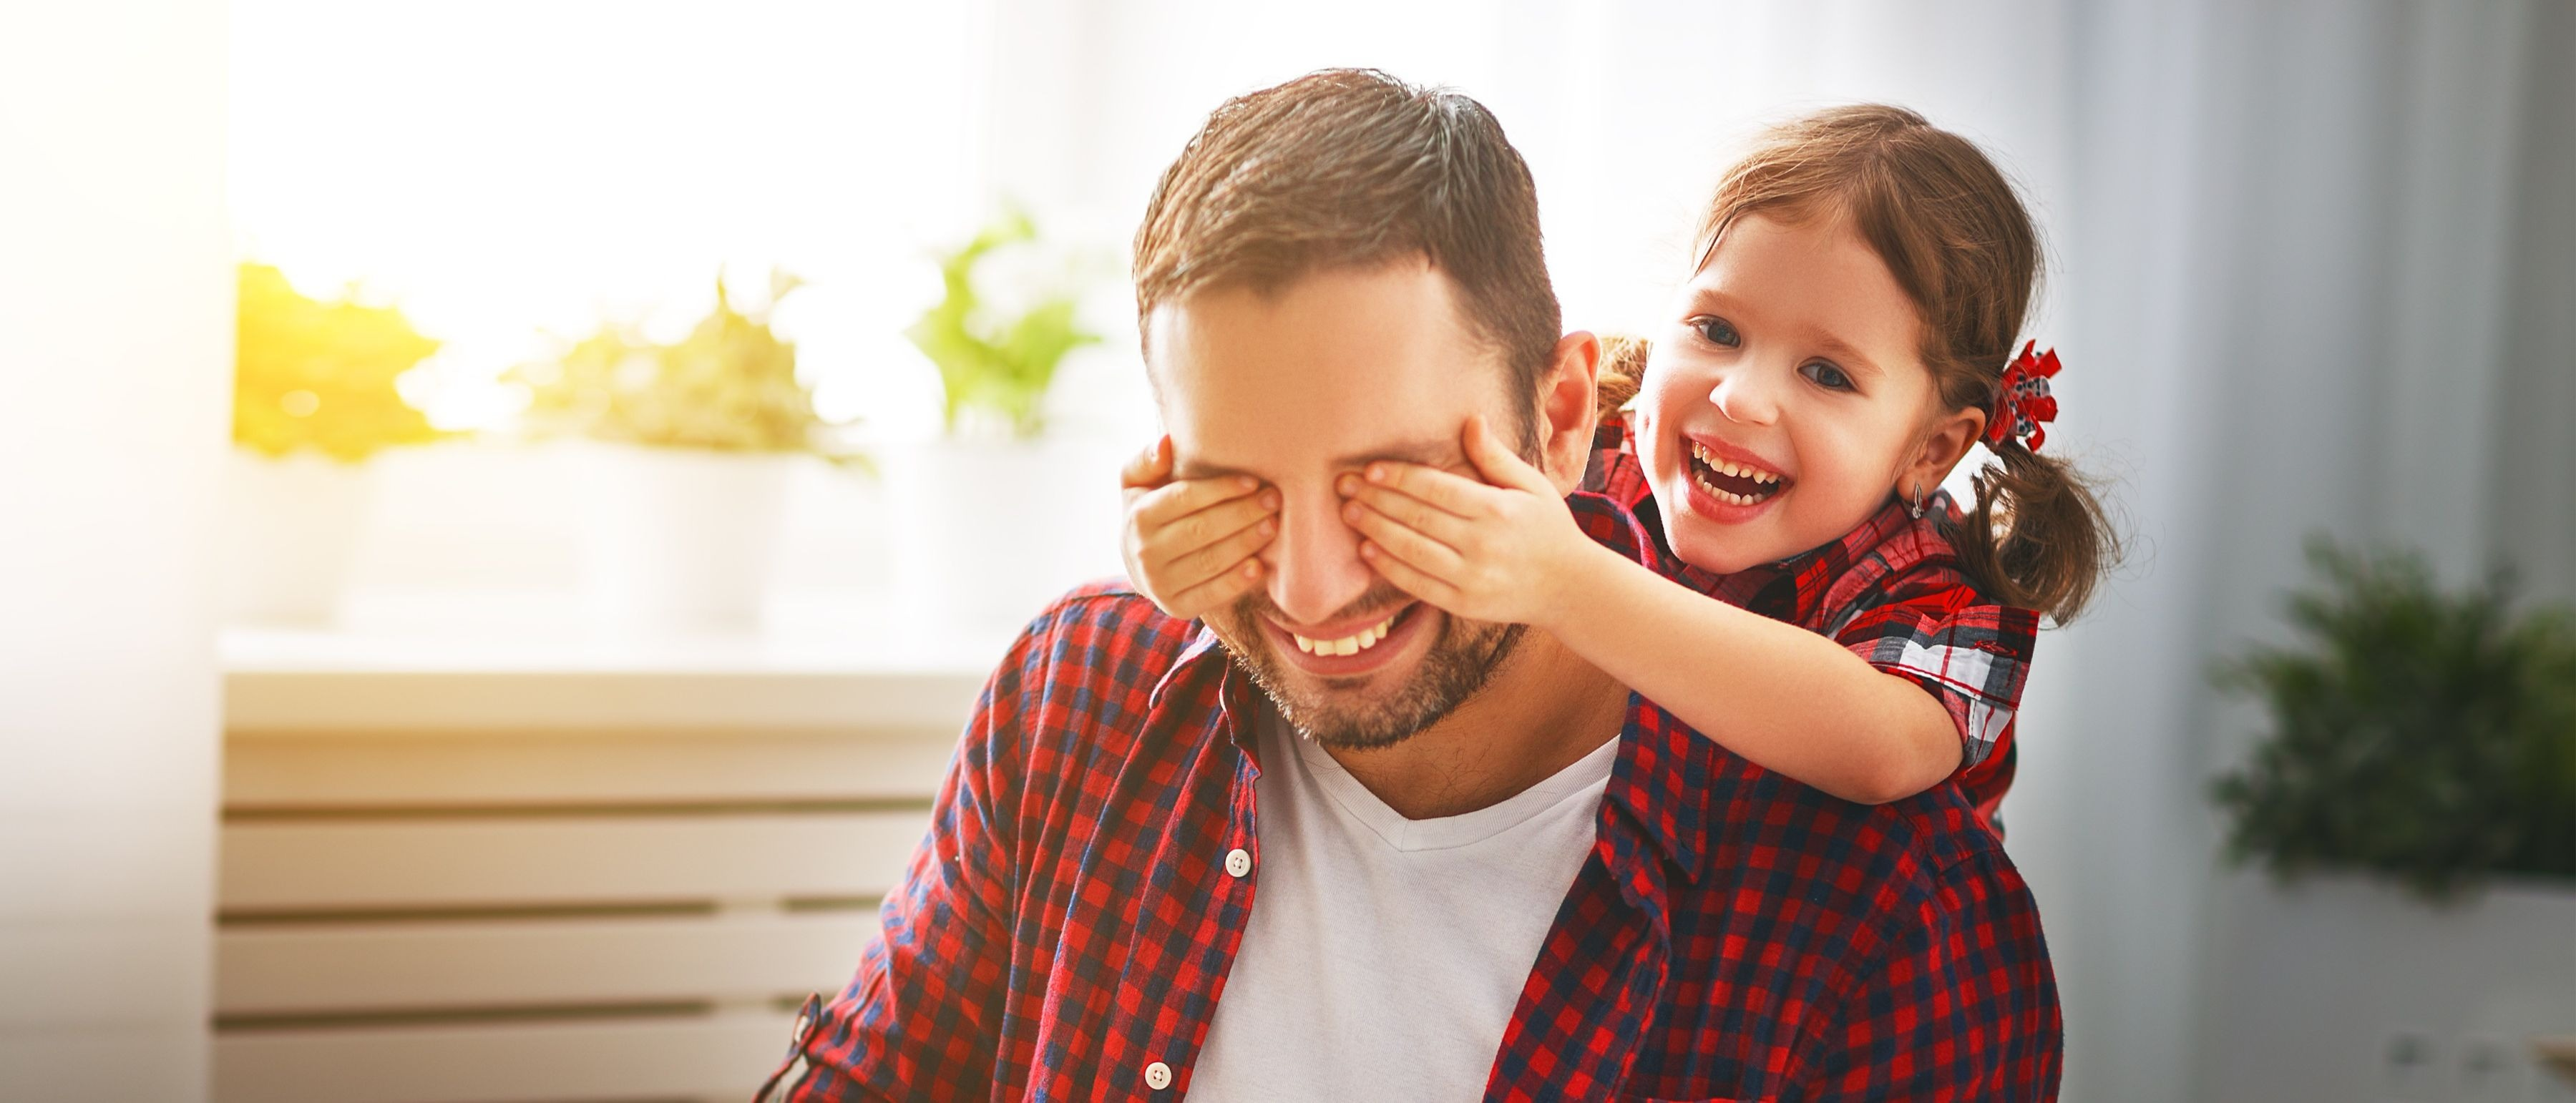 Father's day. A happy family - daughter hugs dad and laughs on a holiday. (Shutterstock)